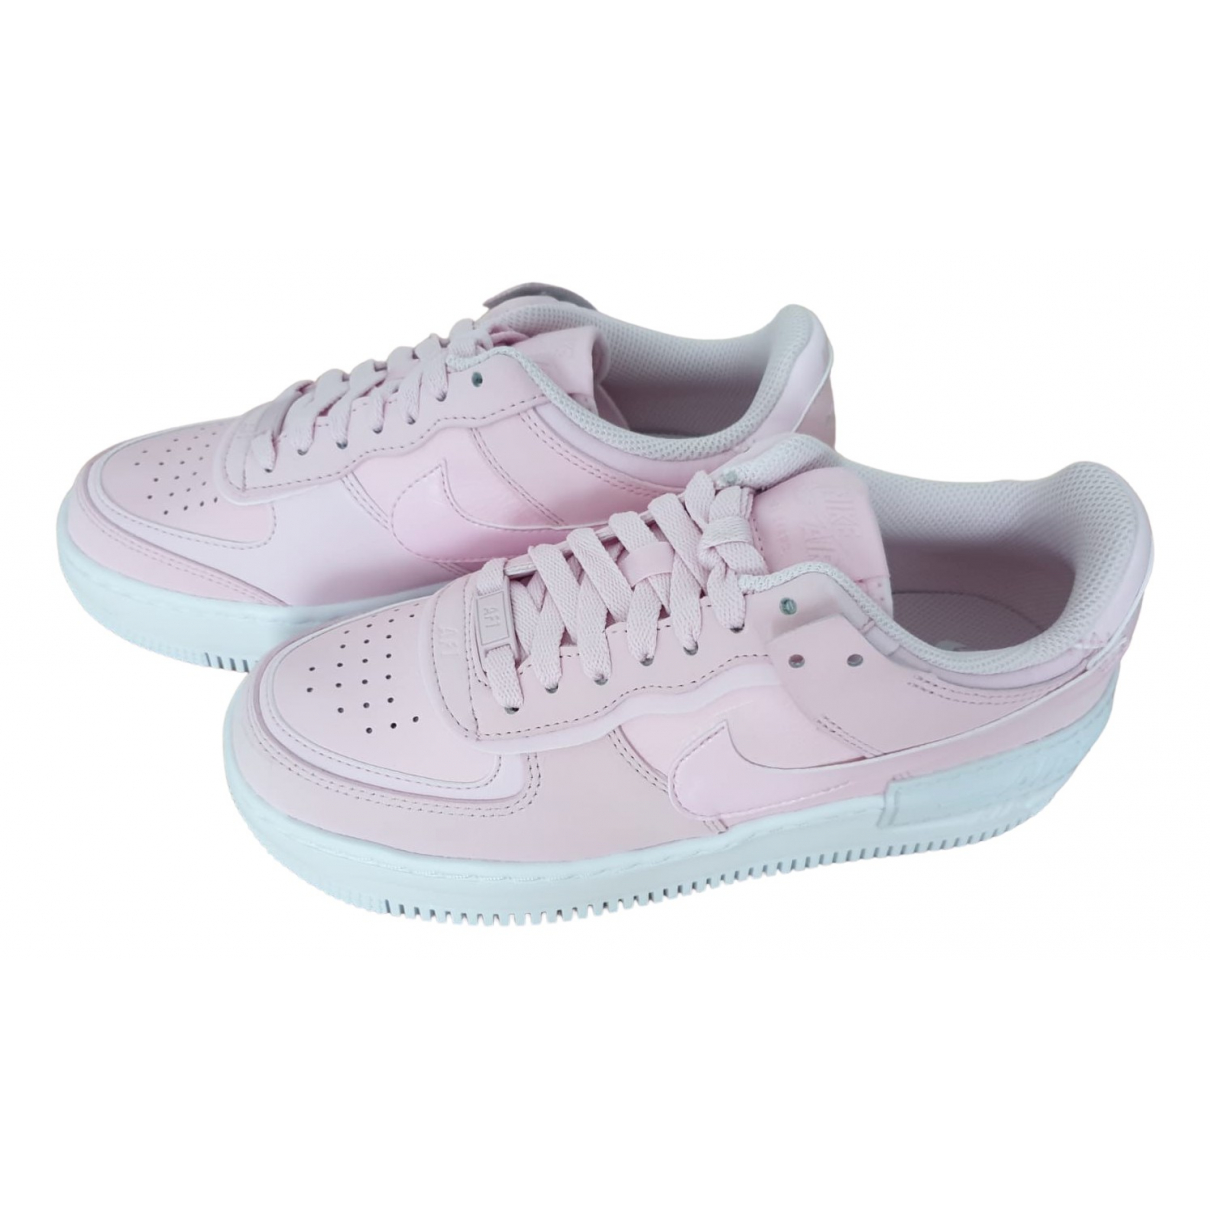 Nike Air Force 1 Pink Leather Trainers for Women 38.5 EU